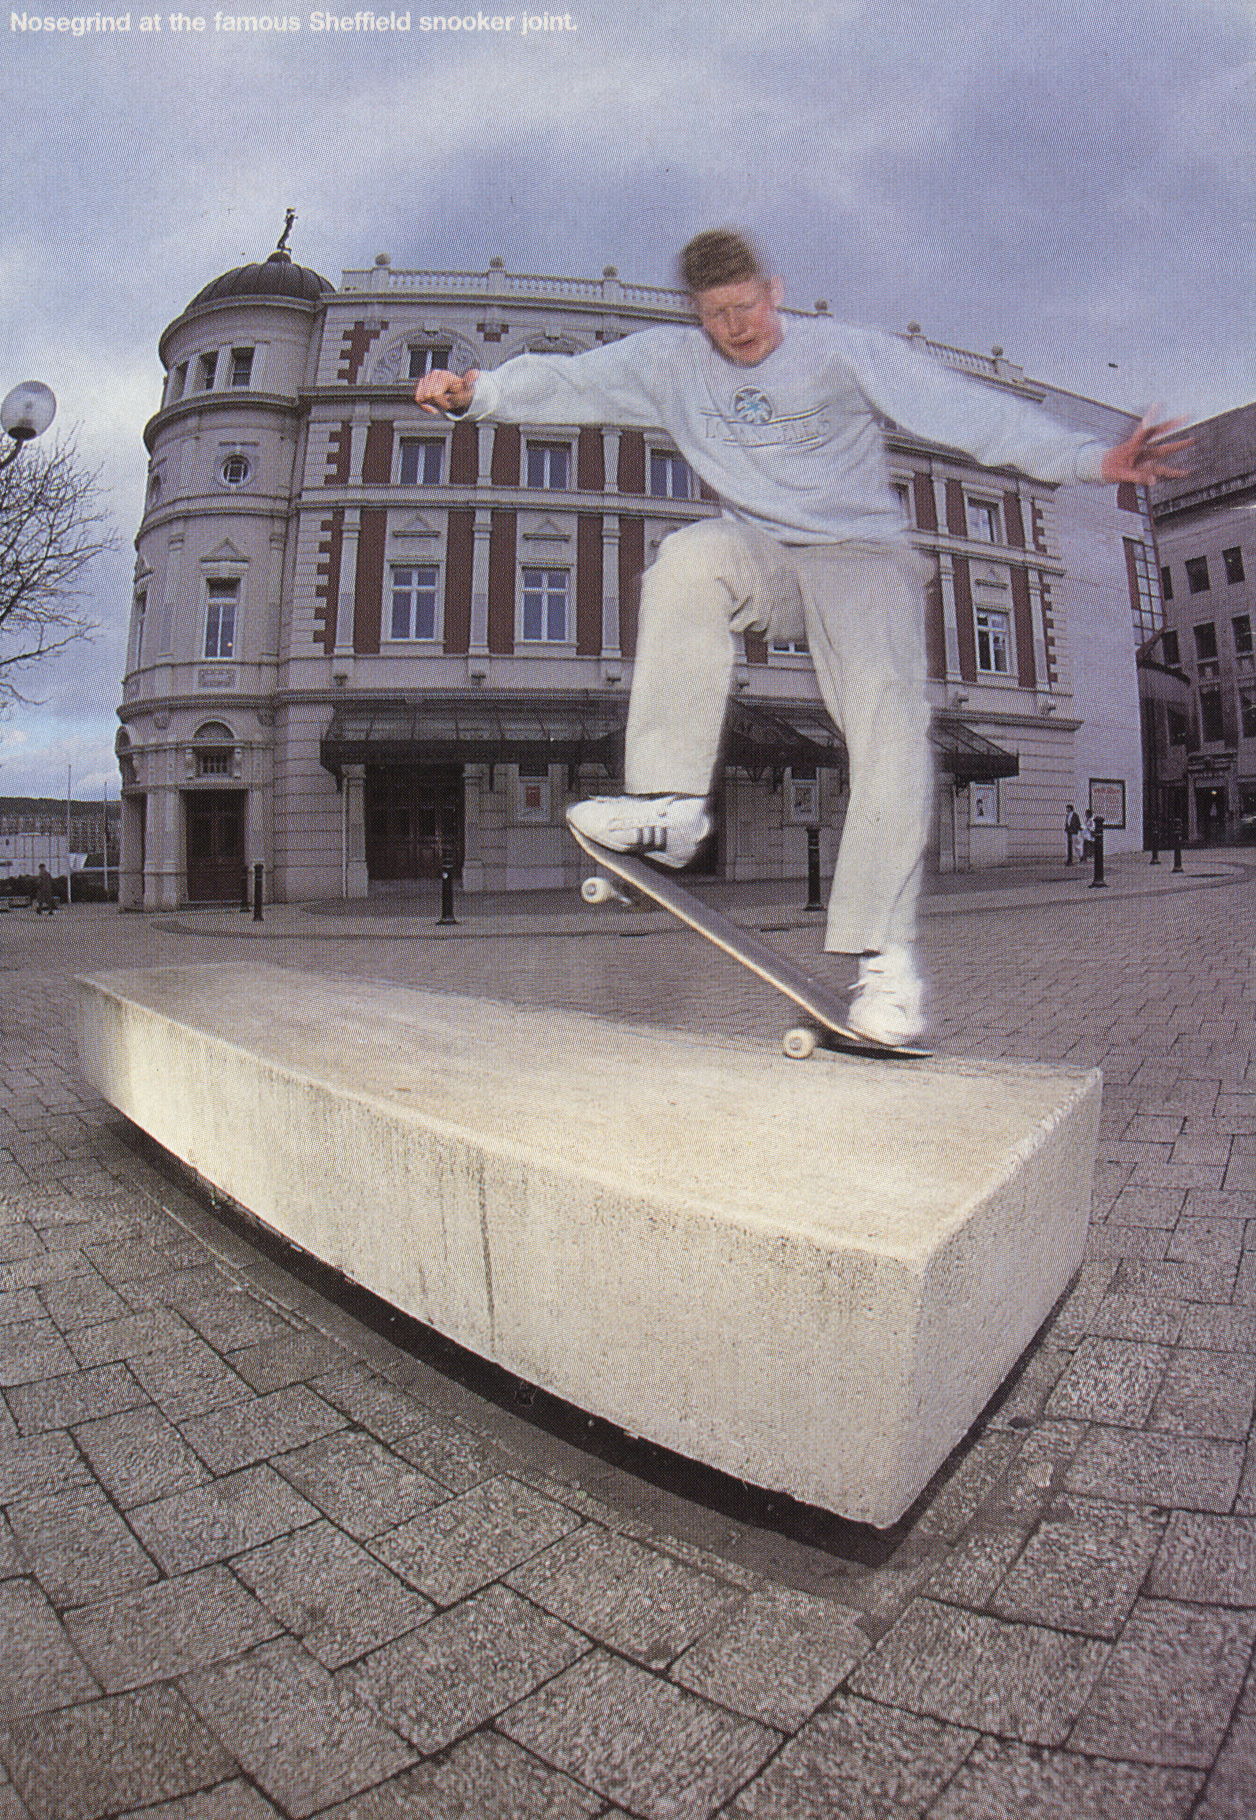 Neil Chester - nosegrind